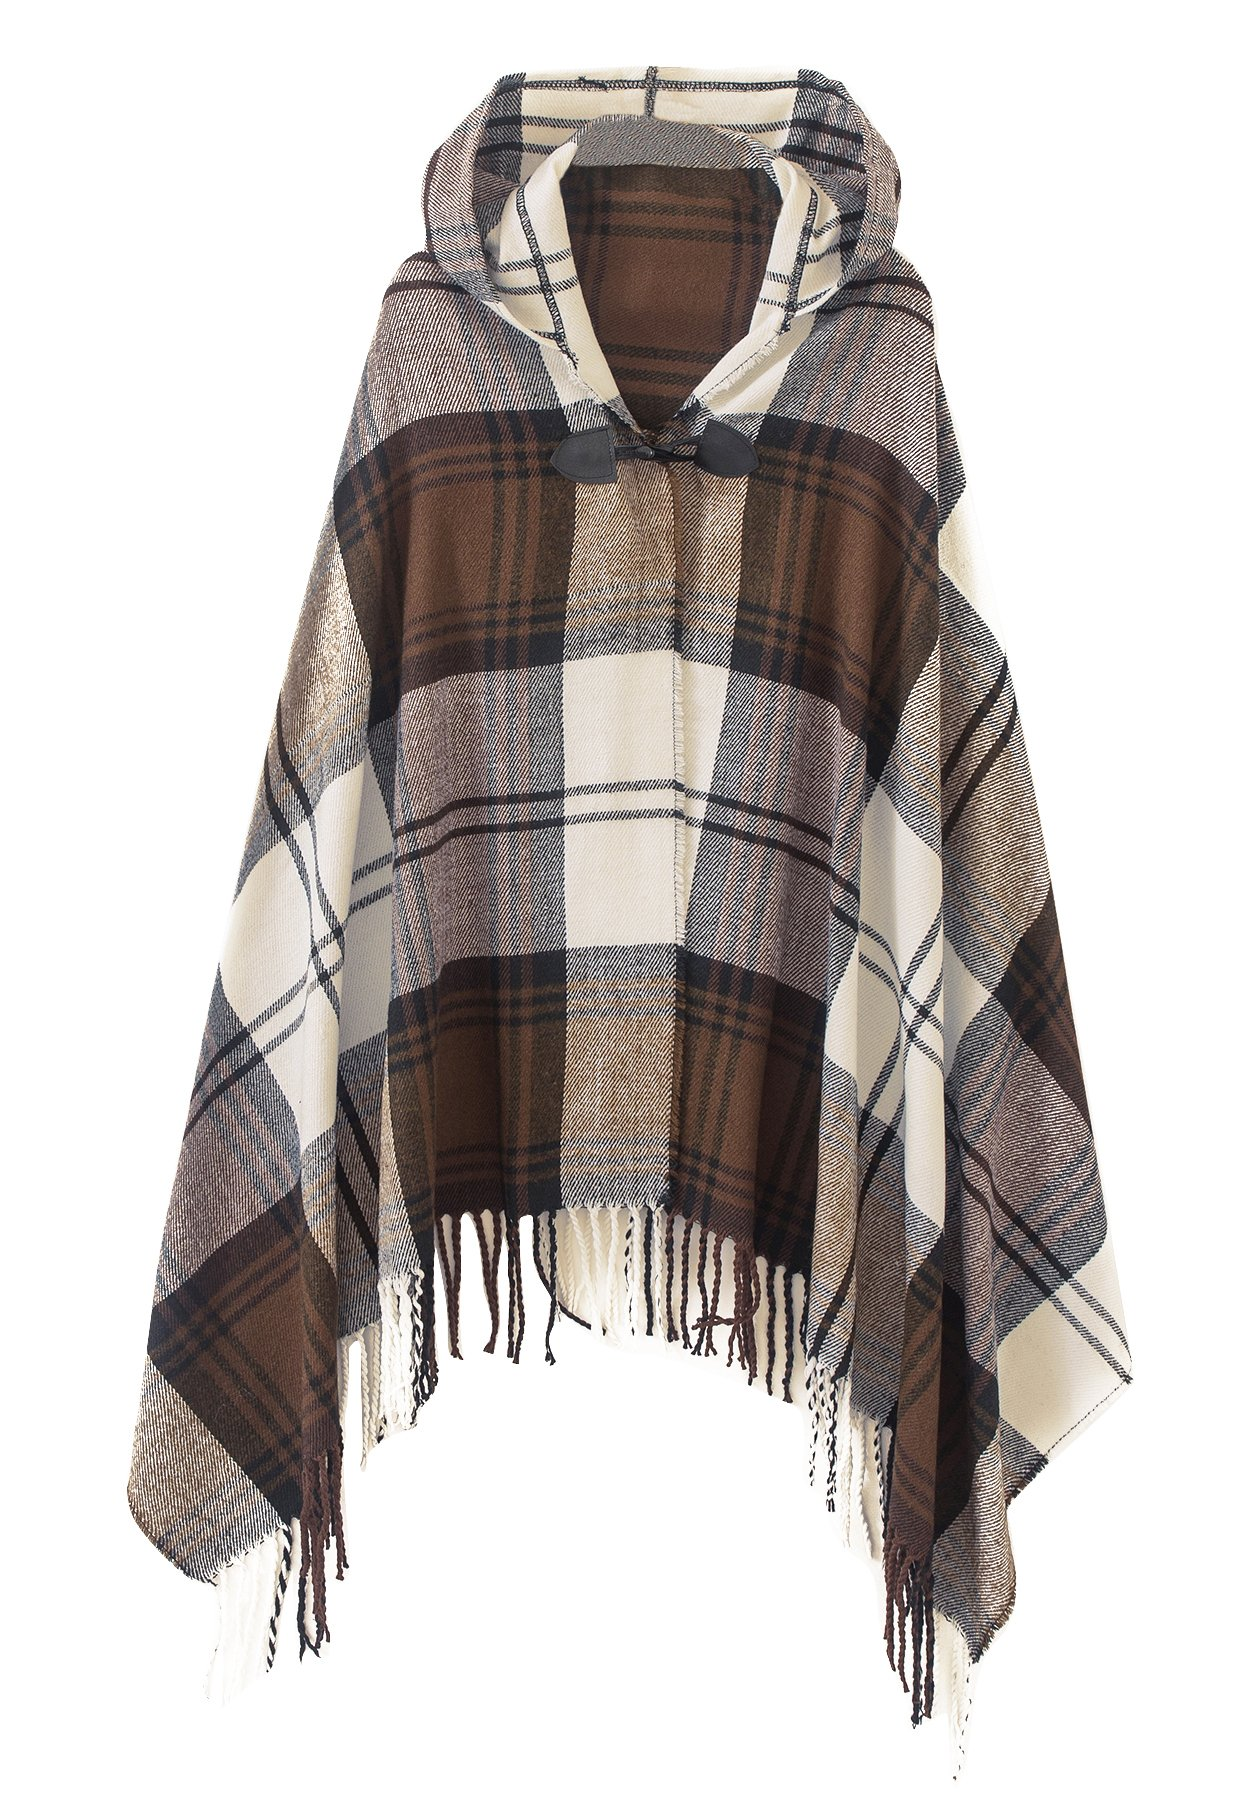 Women's Vintage Plaid Knitted Tassel Poncho Shawl Cape Button Cardigan (One Size, Series 2 Camel)